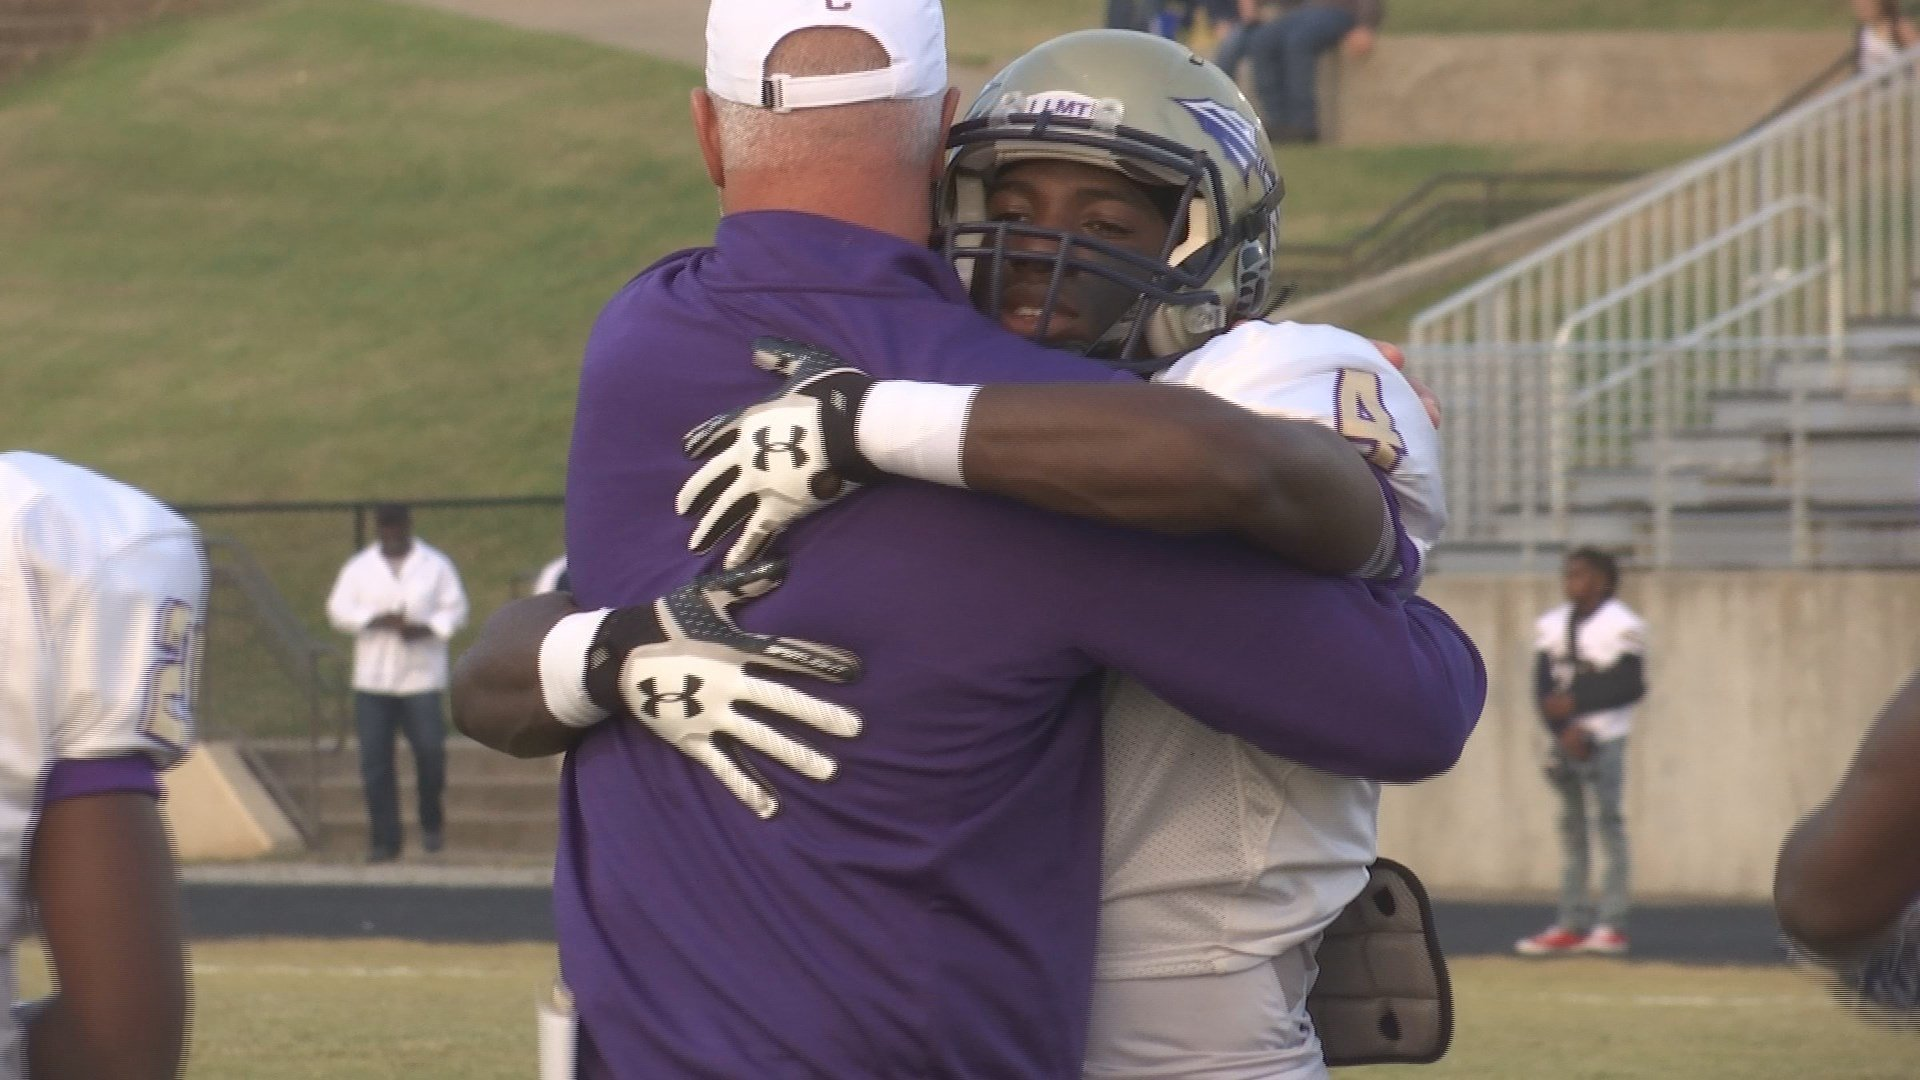 Coach John Small was unable to pray with his team in the game against Newnan (WGCL)